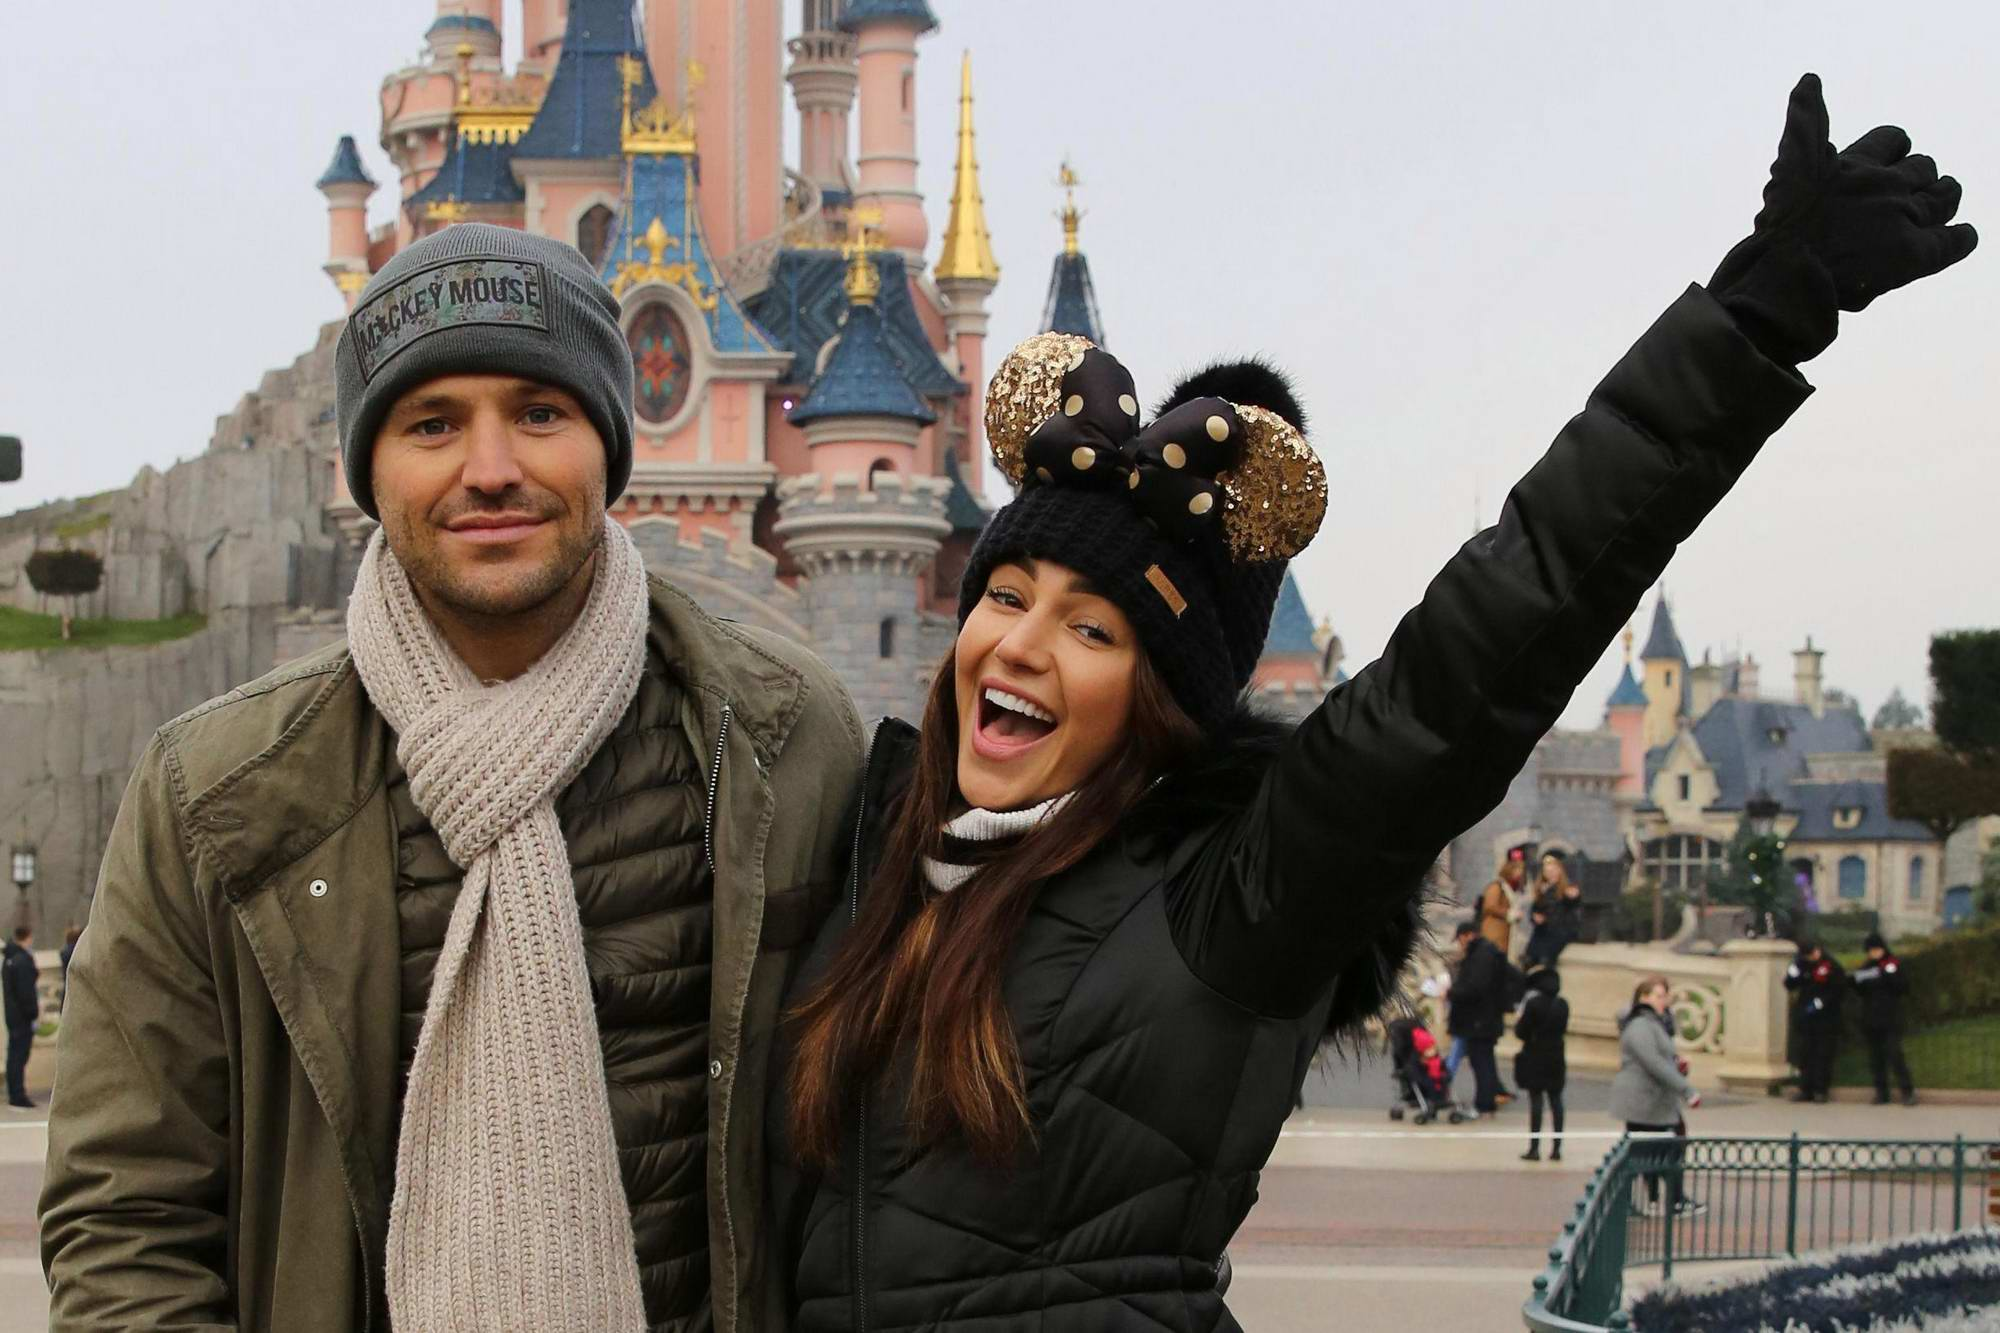 Michelle Keegan and Mark Wright enjoys a day in Disneyland in Paris, France